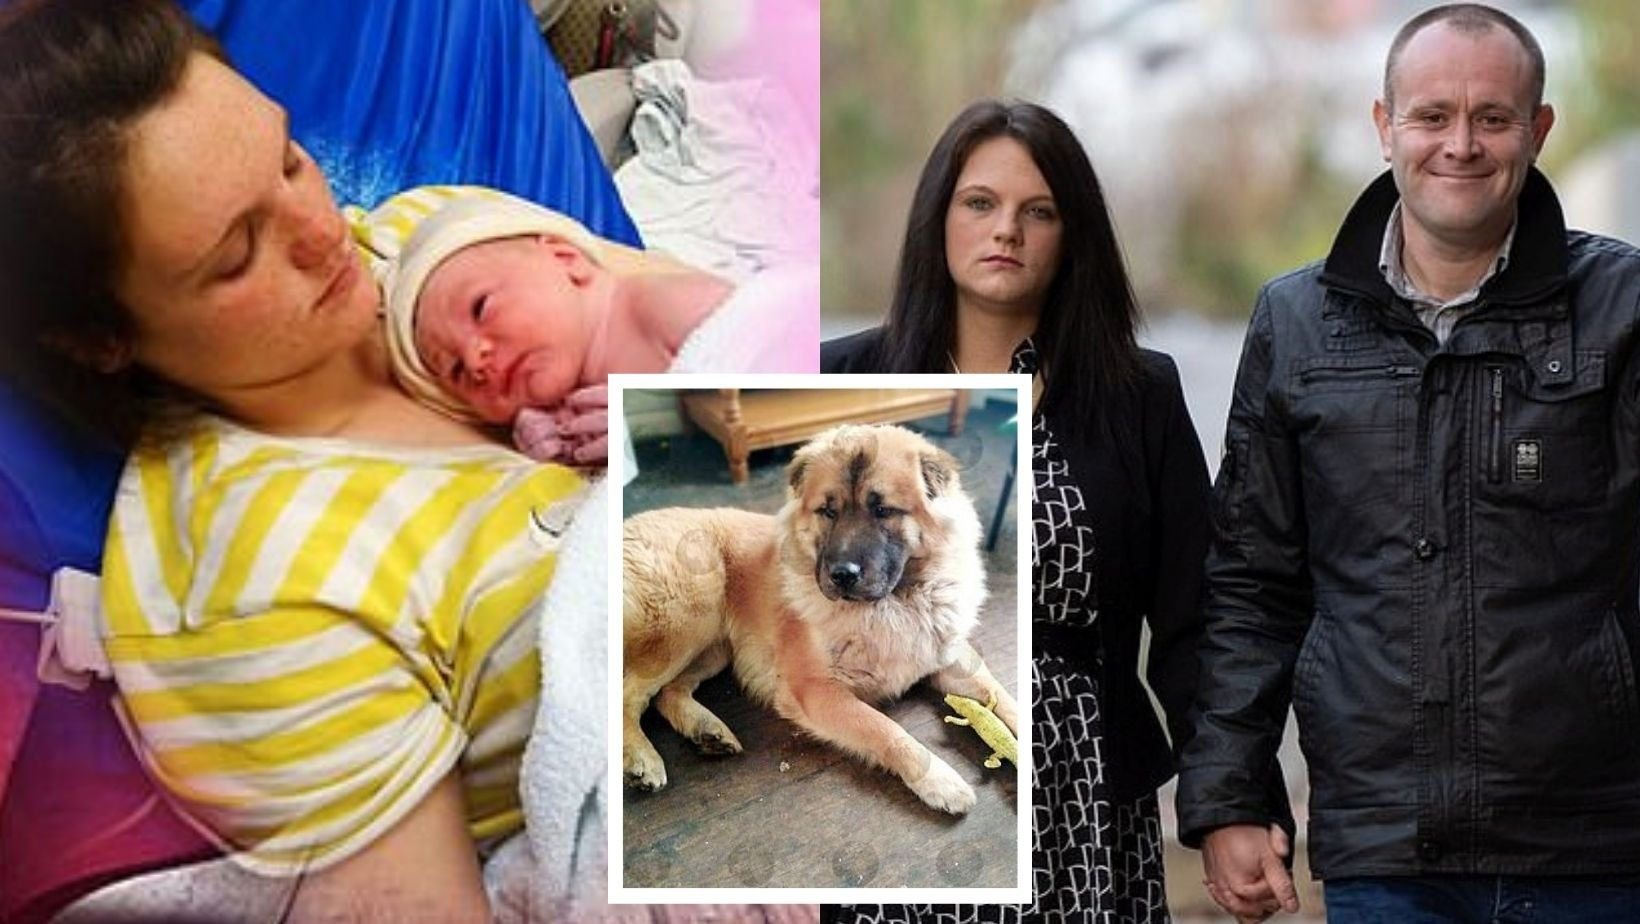 1 44.jpg?resize=1200,630 - Parents Arrested After Jealous Family Dog Mauled Their 12-Day-Old Newborn Son To Death